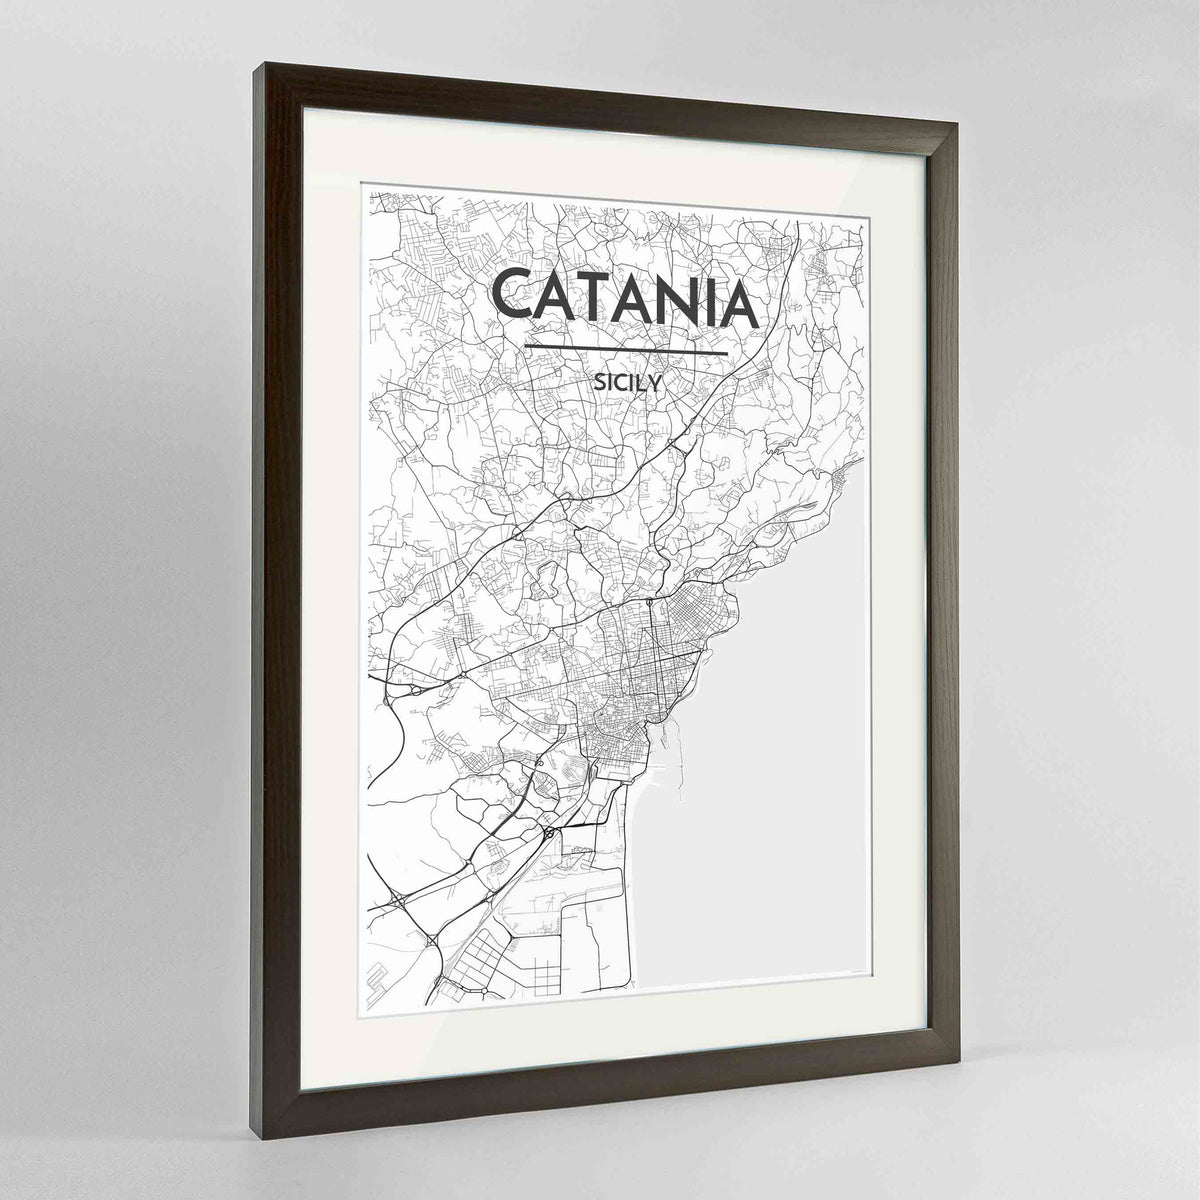 "Framed Catania Map Art Print 24x36"" Contemporary Walnut frame Point Two Design Group"